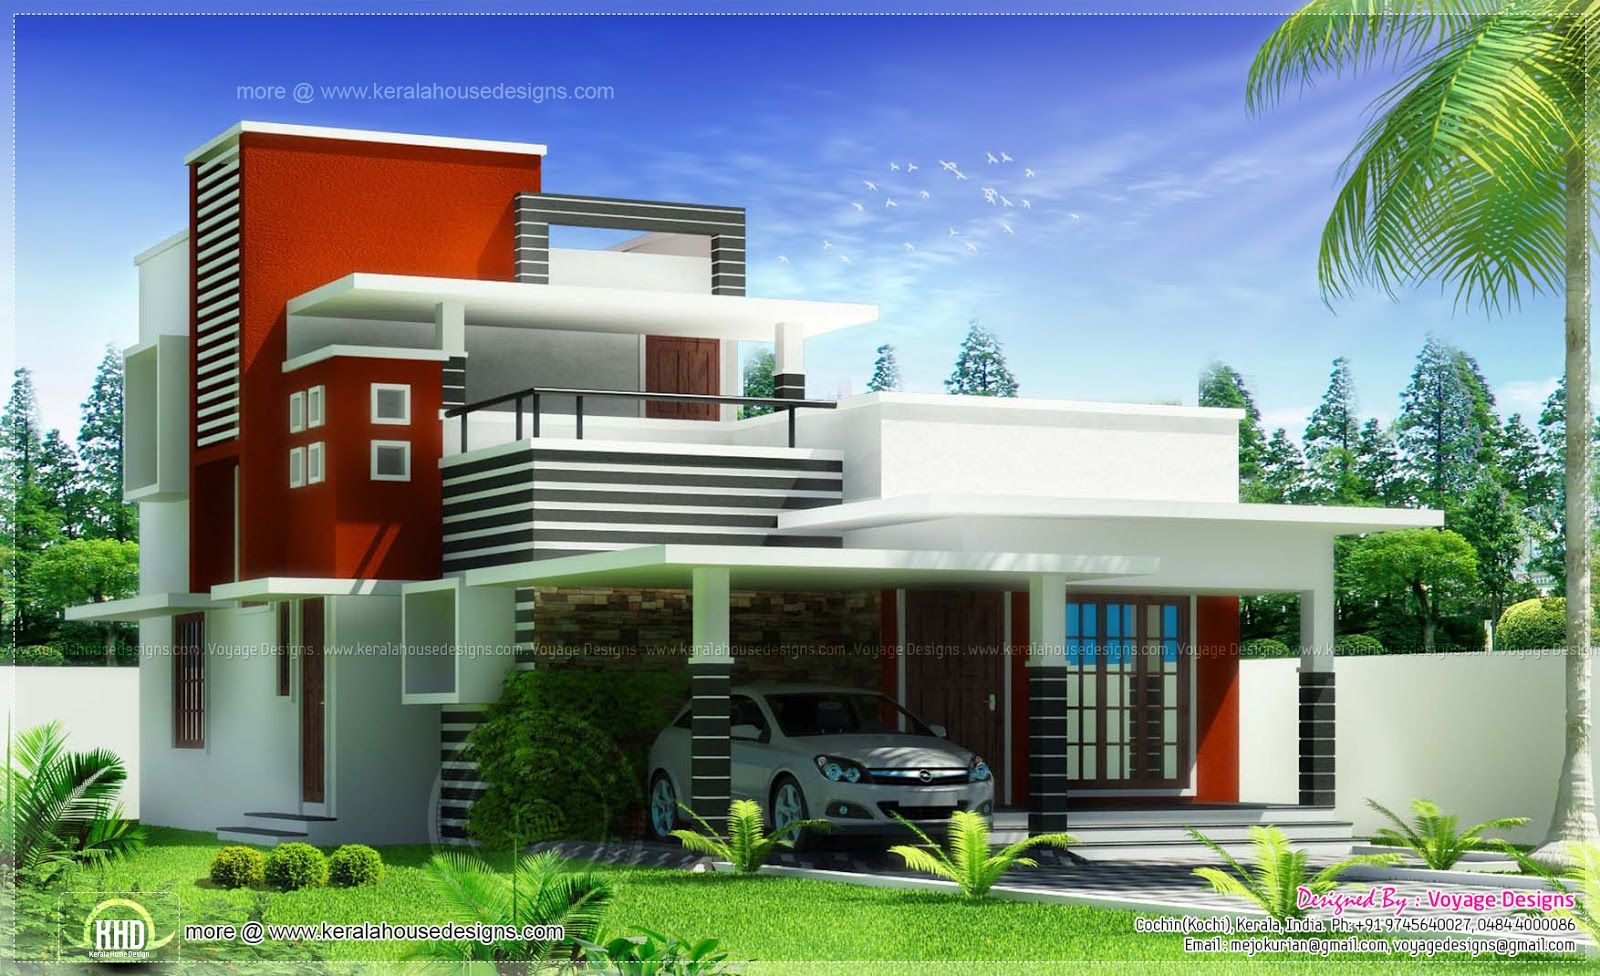 Kerala house designs architecture pinterest kerala for Contemporary house in kerala